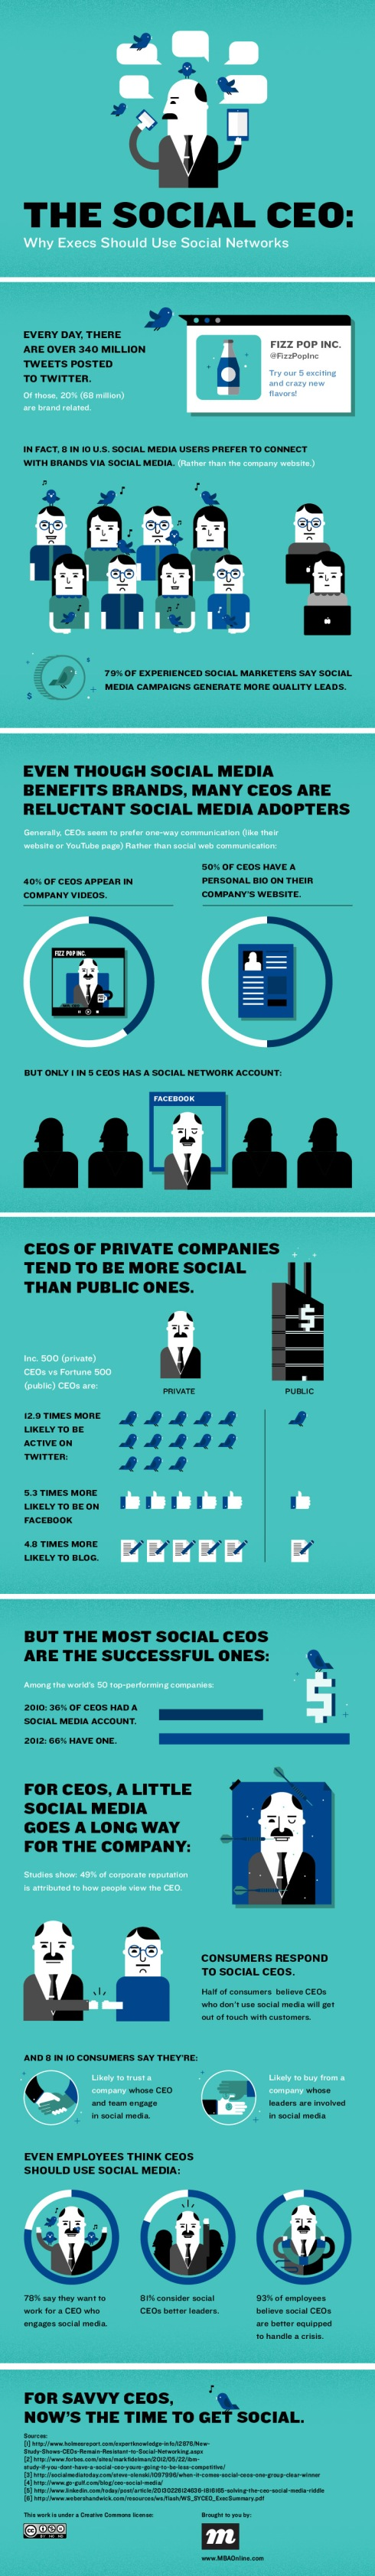 Inside the mind of a social CEO [Infographic]